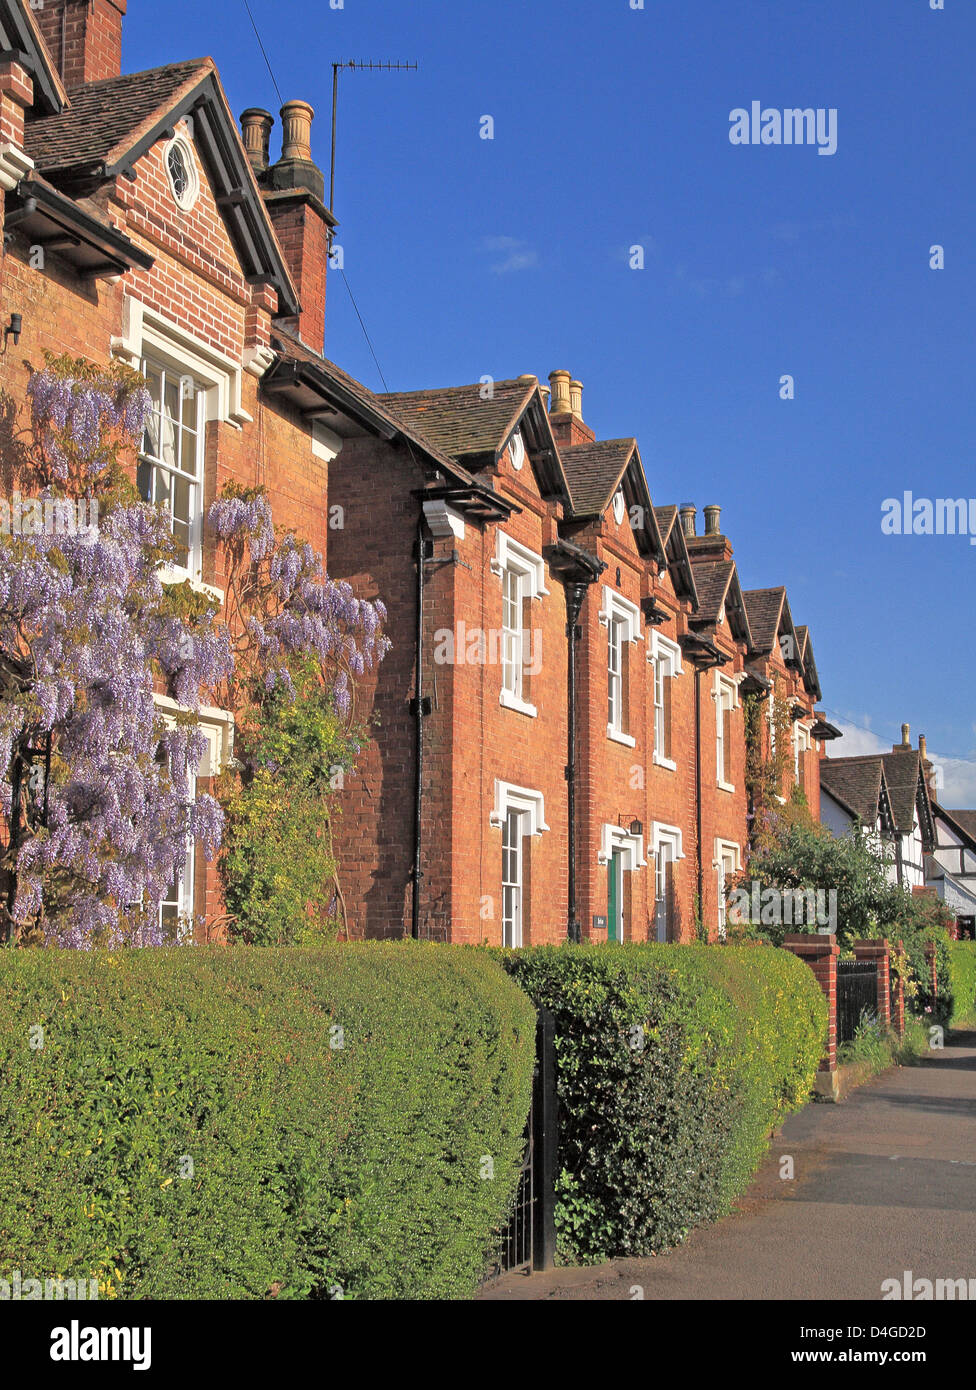 Row of Houses with Privet Hedge, Ombersley Village, Worcestershire, England, UK - Stock Image